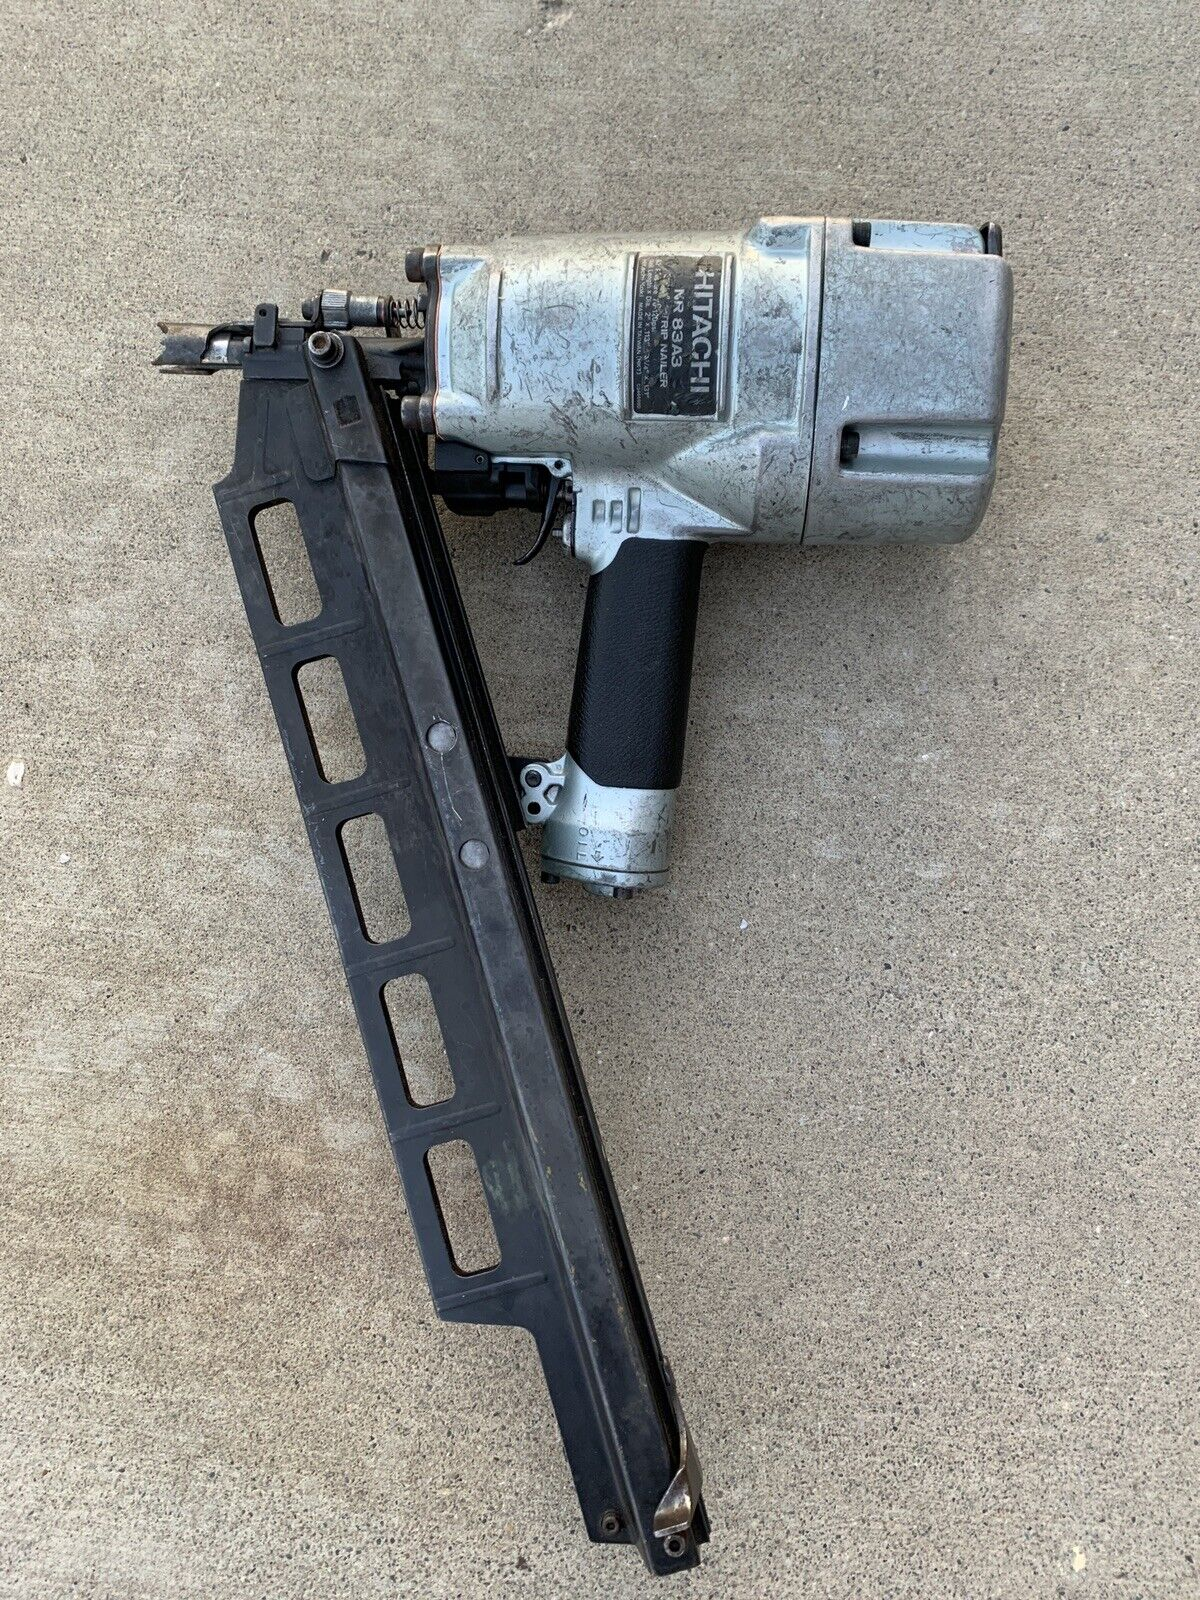 Hitachi NR83A3. Buy it now for 400.00